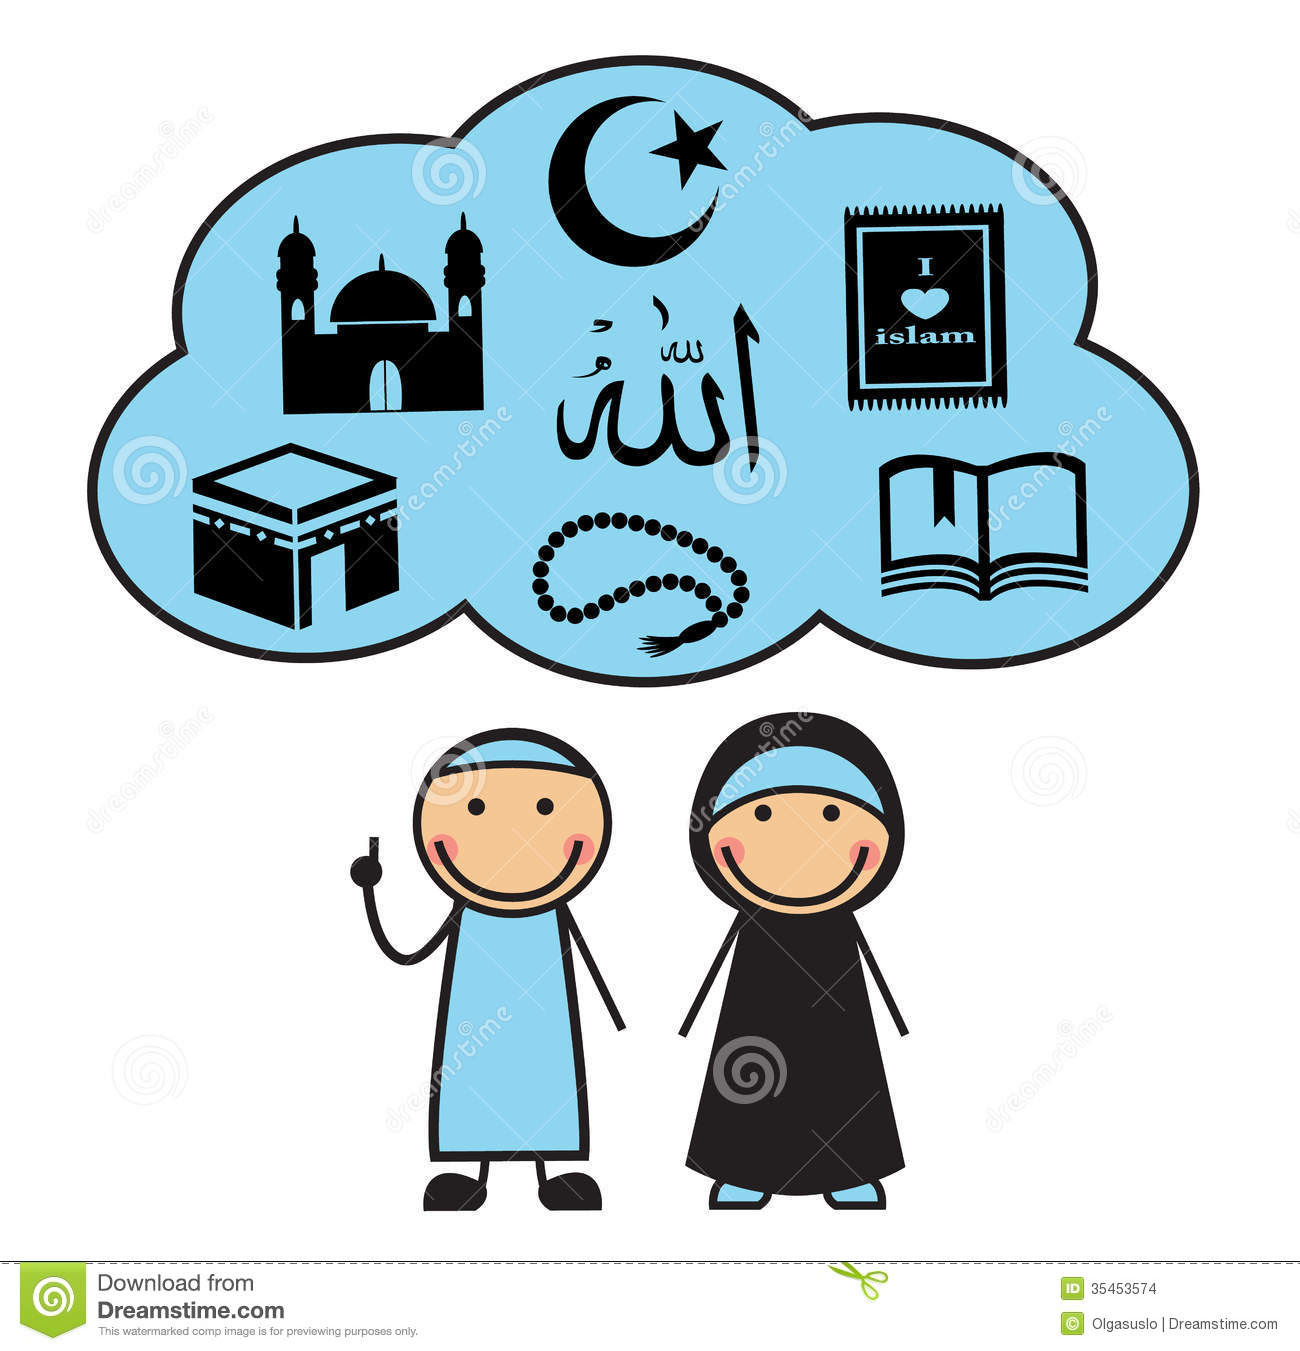 96 Symbol Meaning Of Islam Meaning Islam Symbol Of